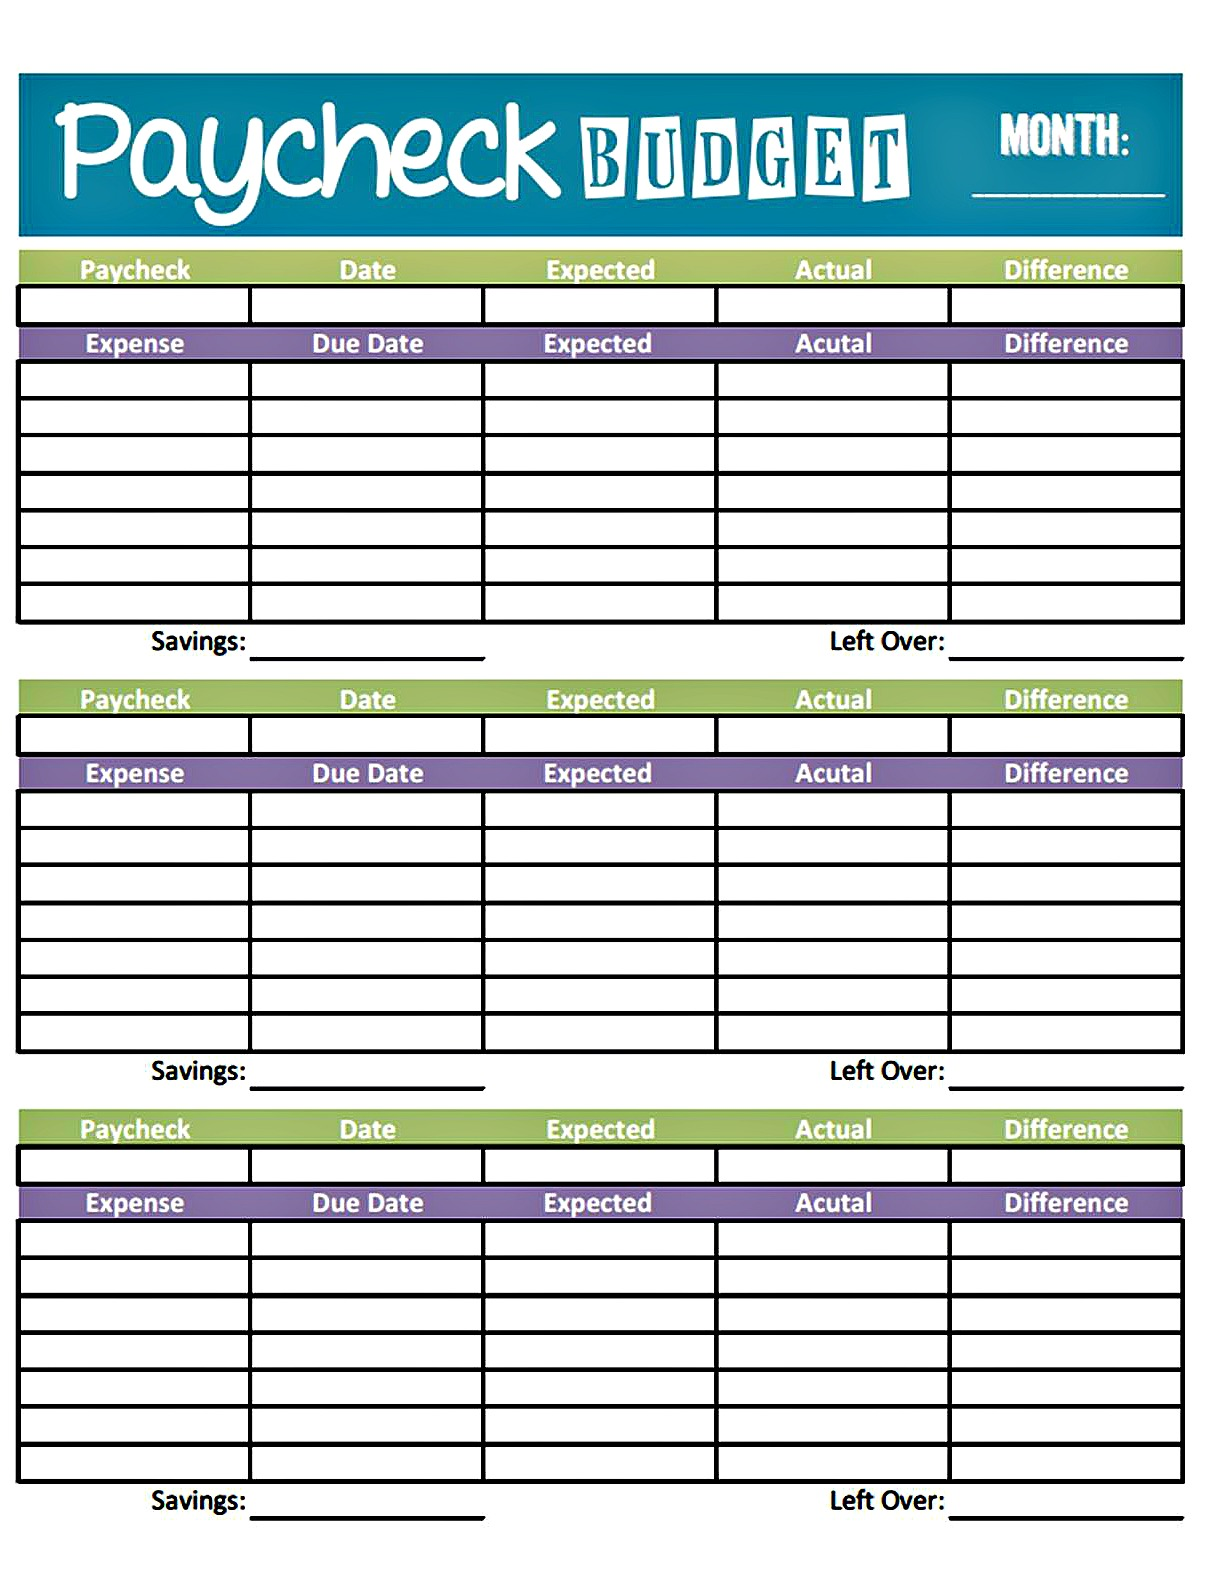 paycheck budget form-Printable Paper Budgets Samples